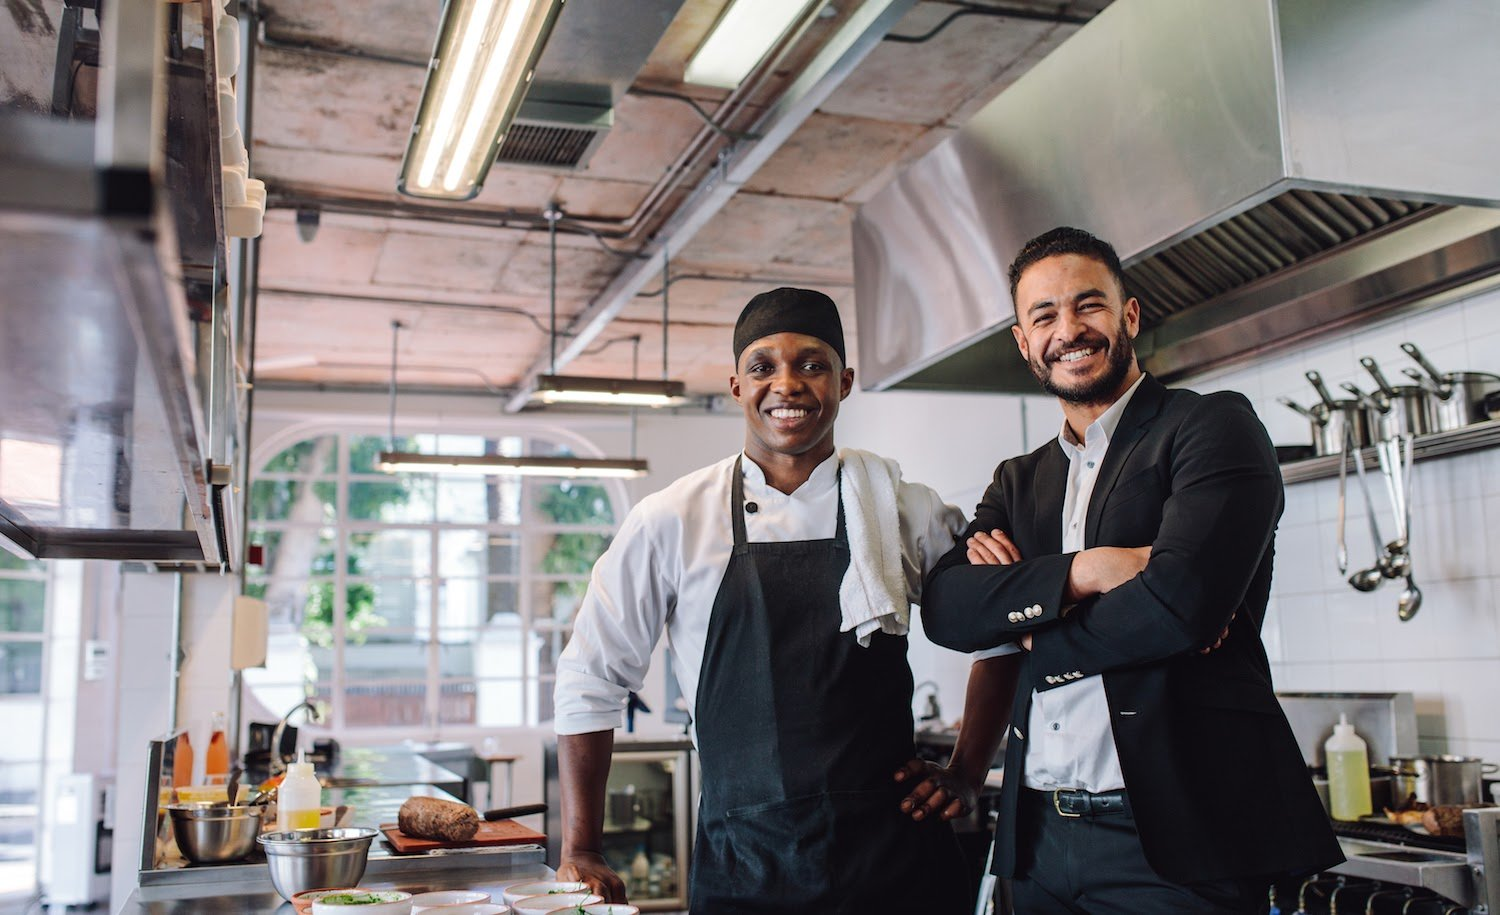 Restaurant mission statement: A business man and a cook stand in a restaurant kitchen